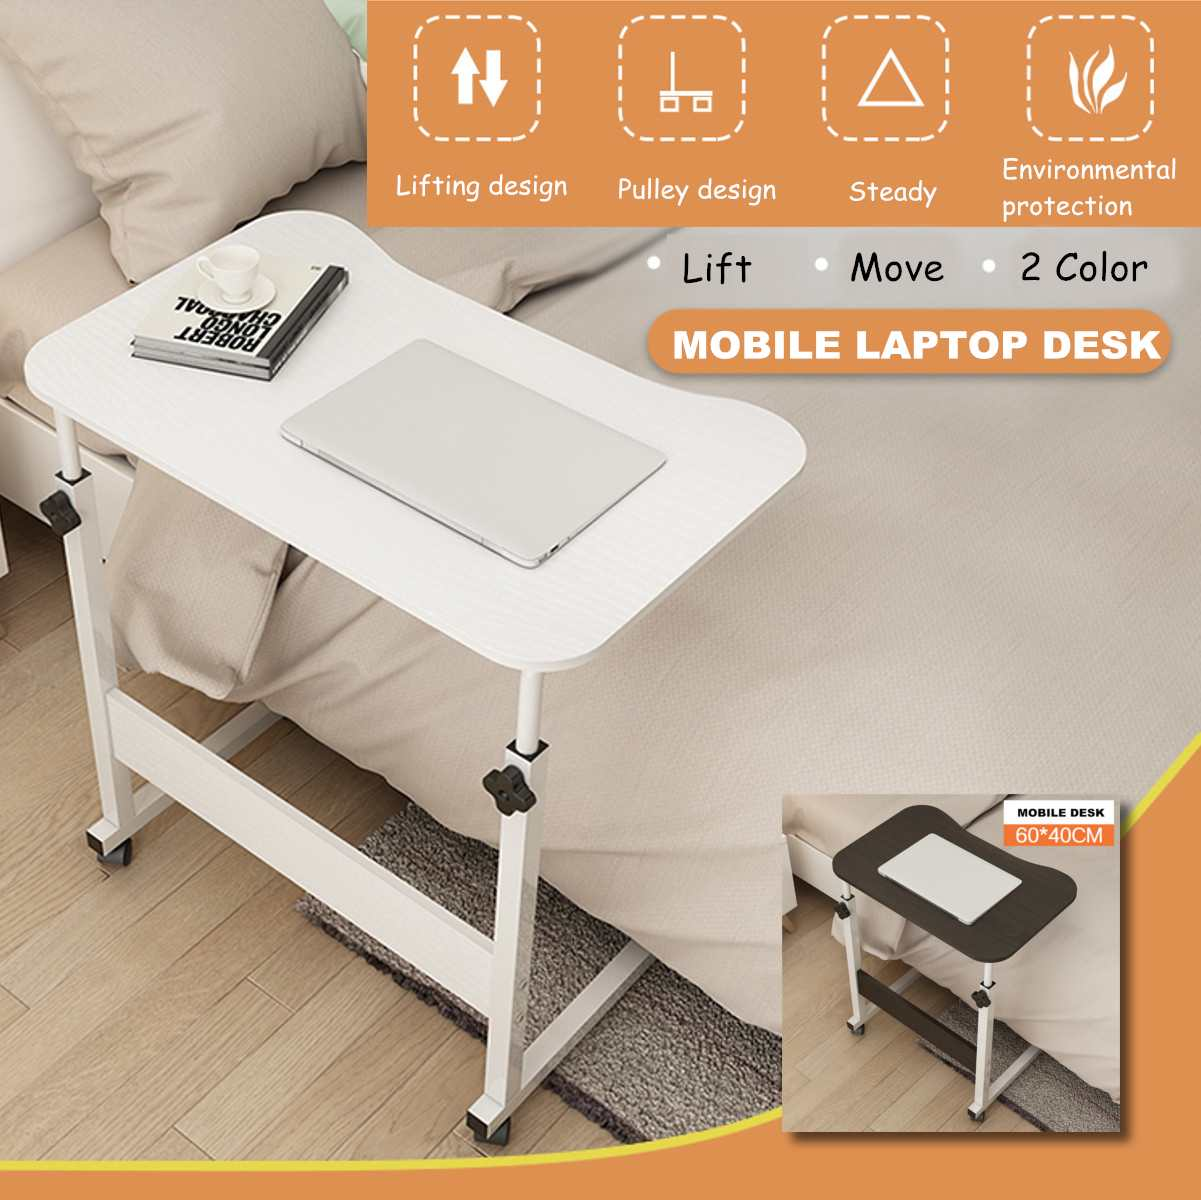 Adjustable Height Bedside Laptop Table Portable Wooden Notebook Home Mobile Laptop Desk Bed Side Study Table Computer Stand